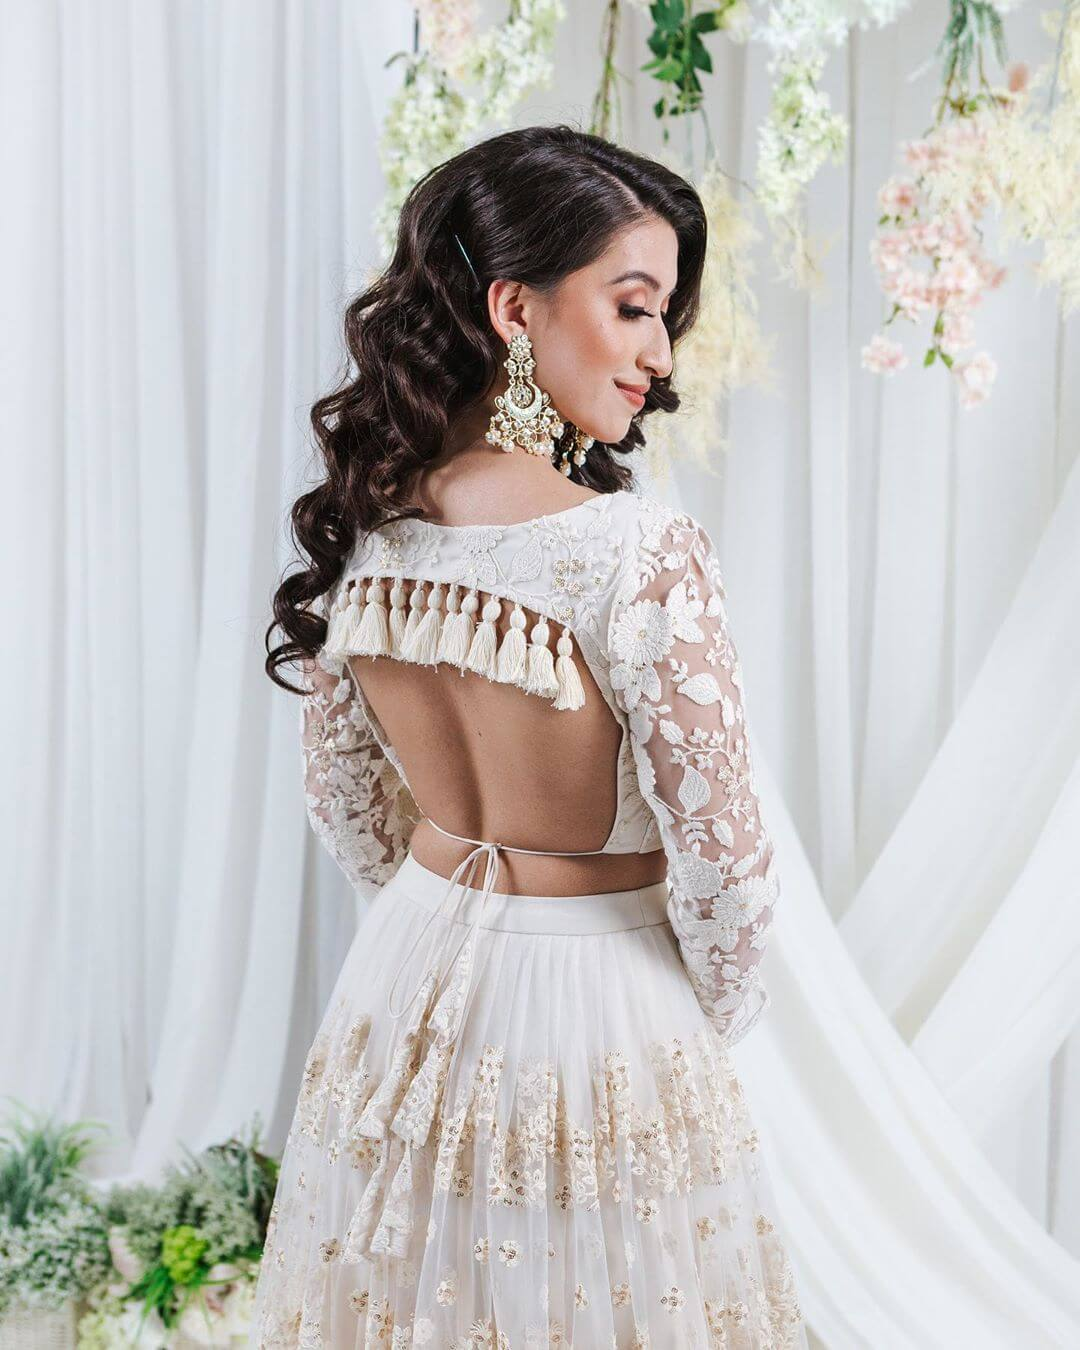 Latest Blouse Back Design Ideas For 2020 Brides To Be